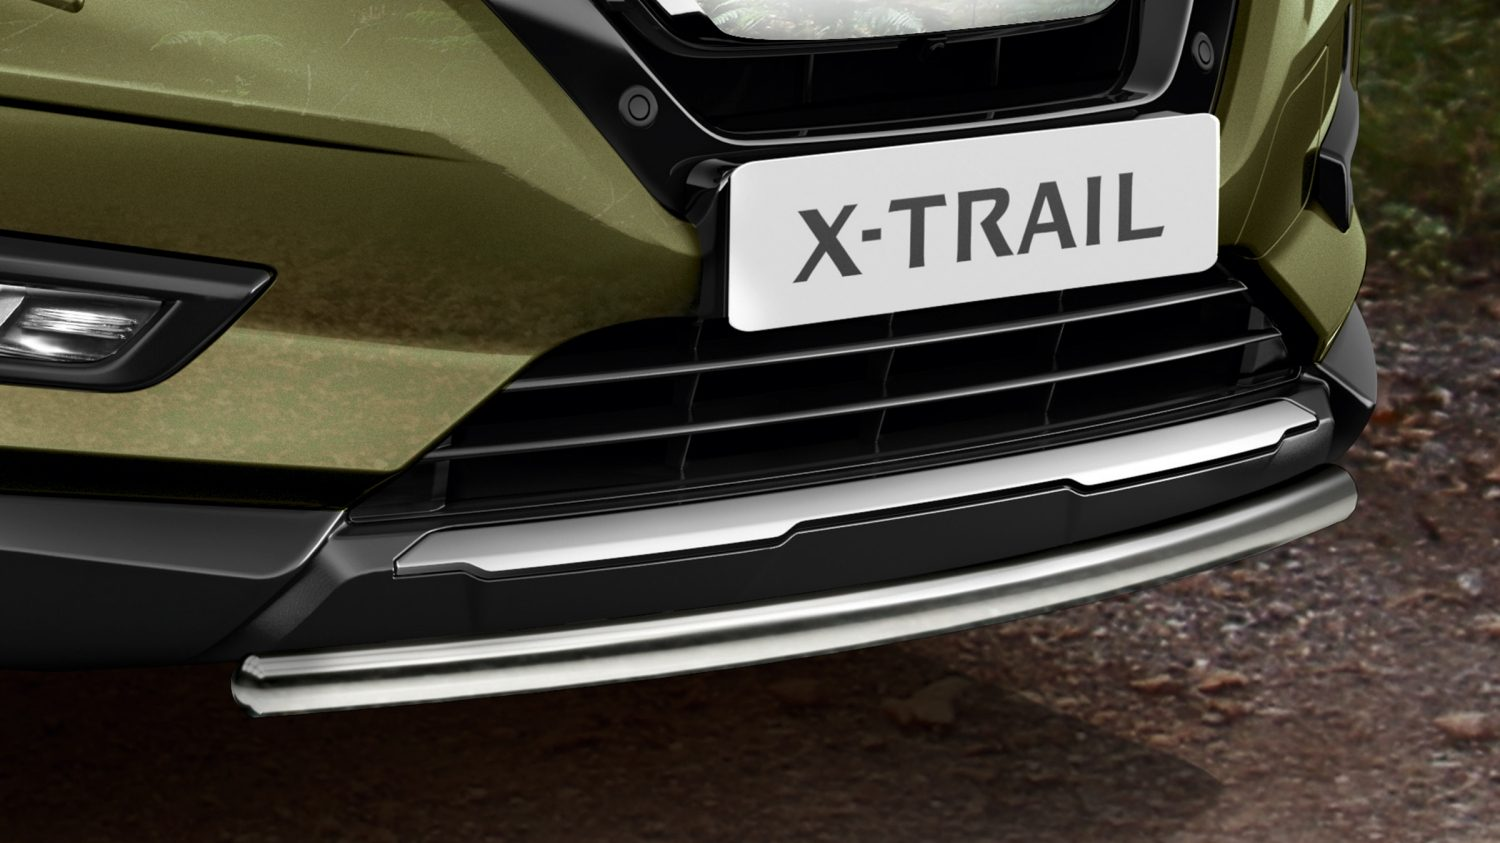 Barra embellecedora frontal del X-Trail